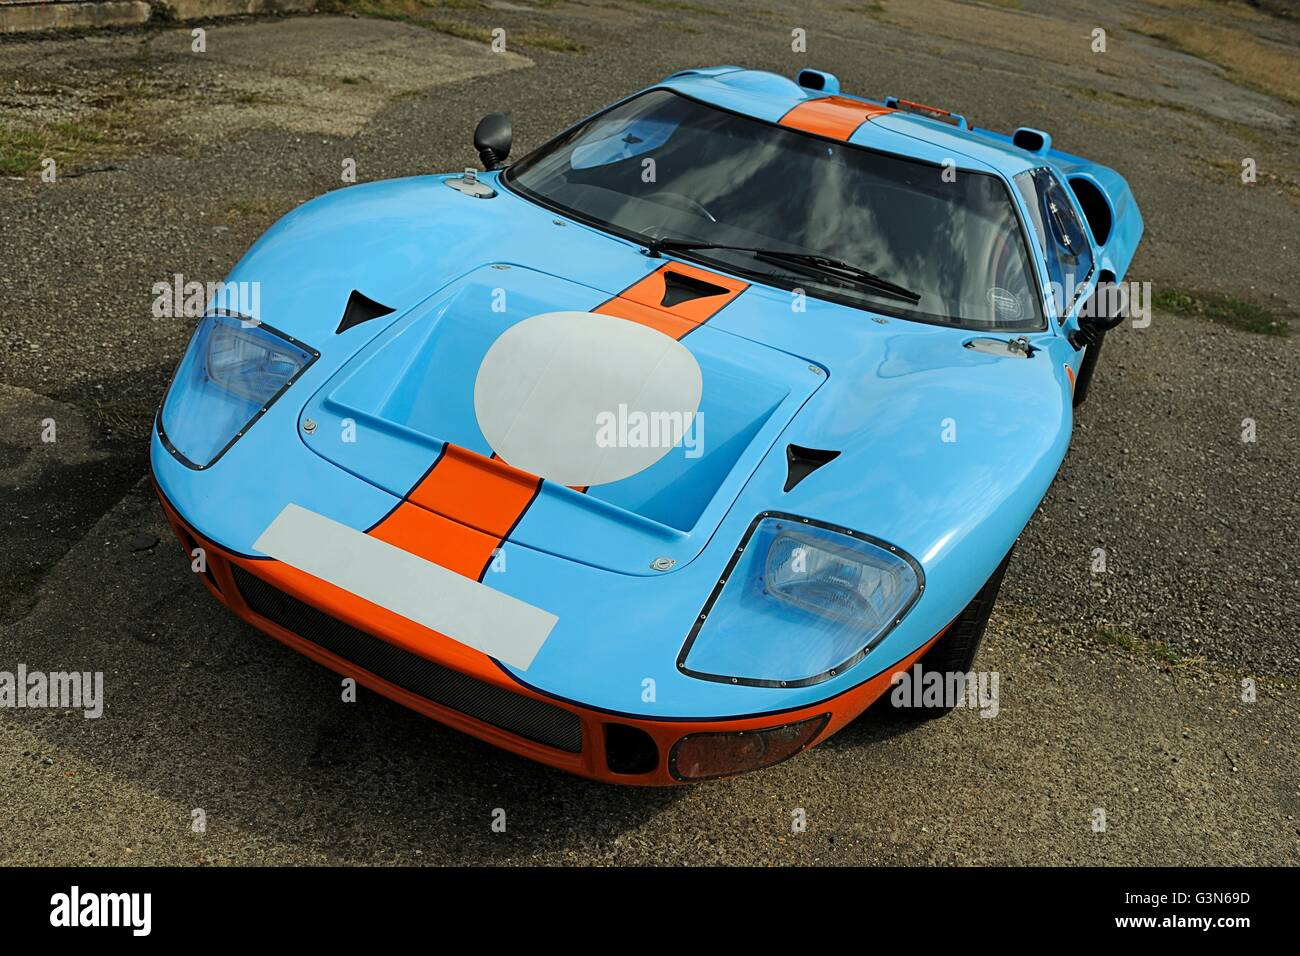 Ford GT40 MkII endurance racing car in Gulf Oil colours - Stock Image